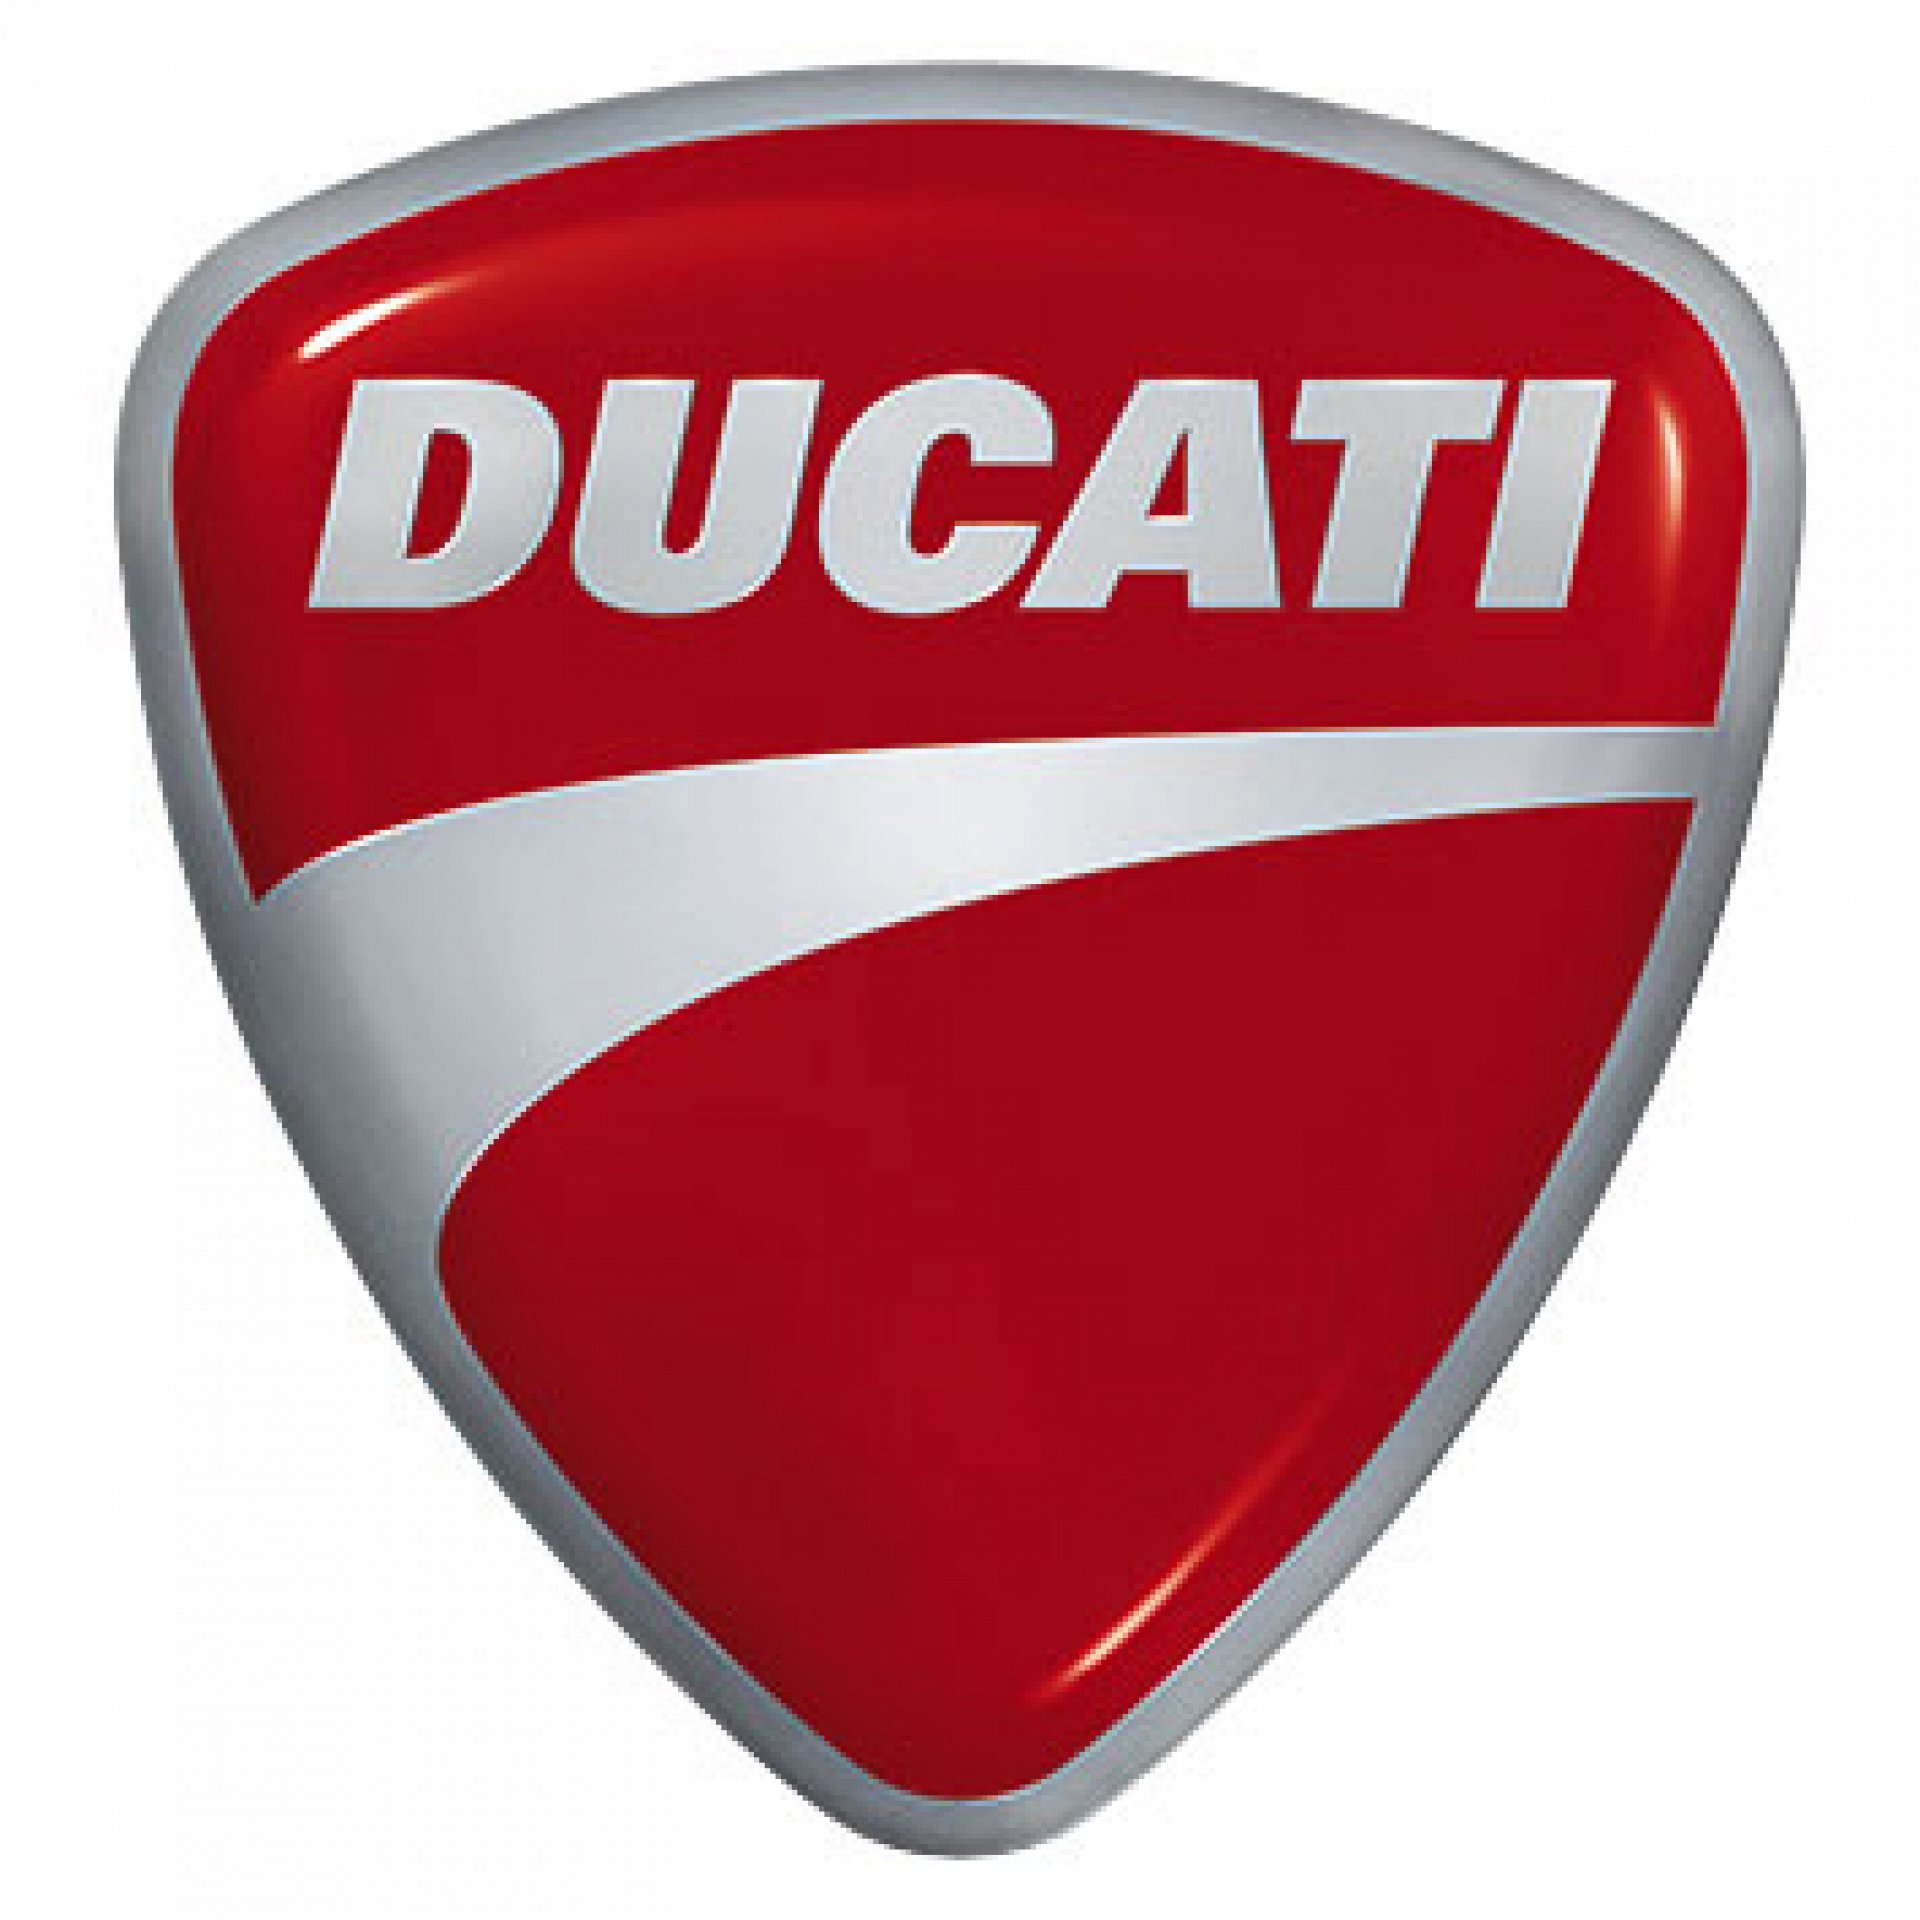 Ducati Genuine Parts for sale